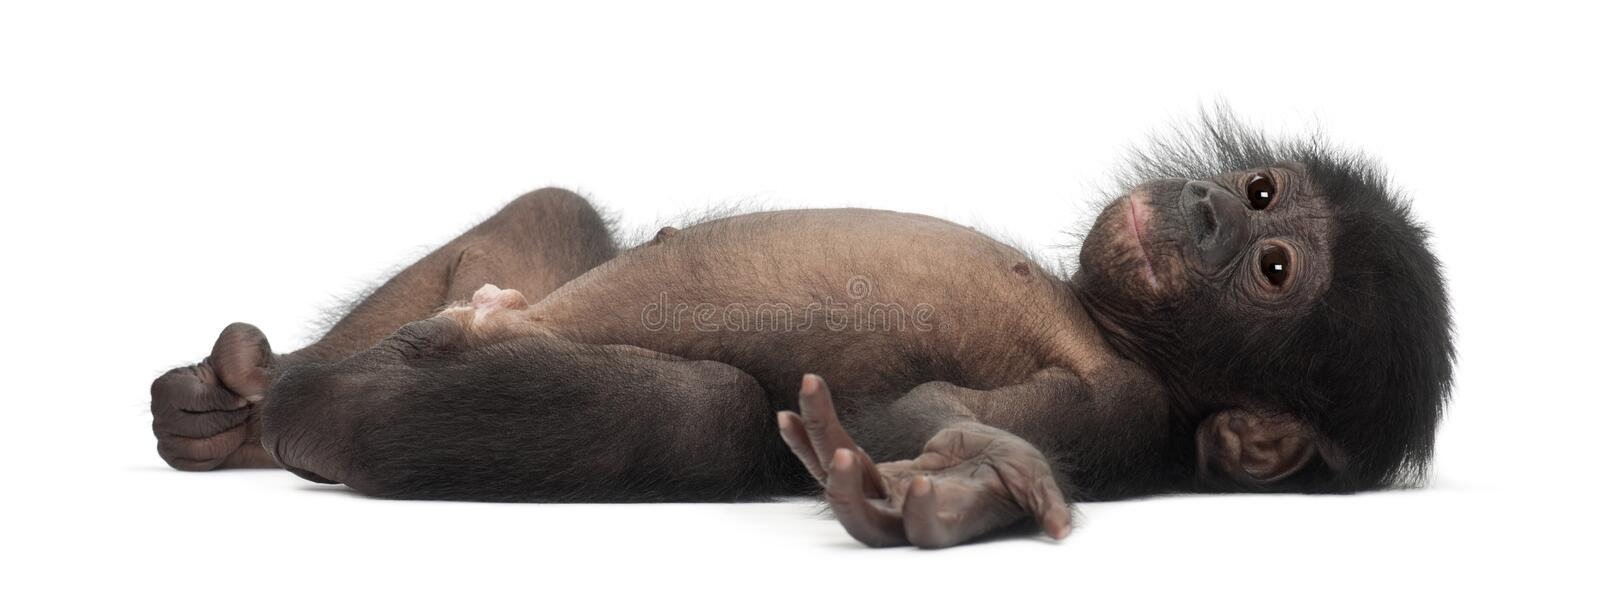 Baby bonobo, Pan paniscus, 4 months old, lying stock photography